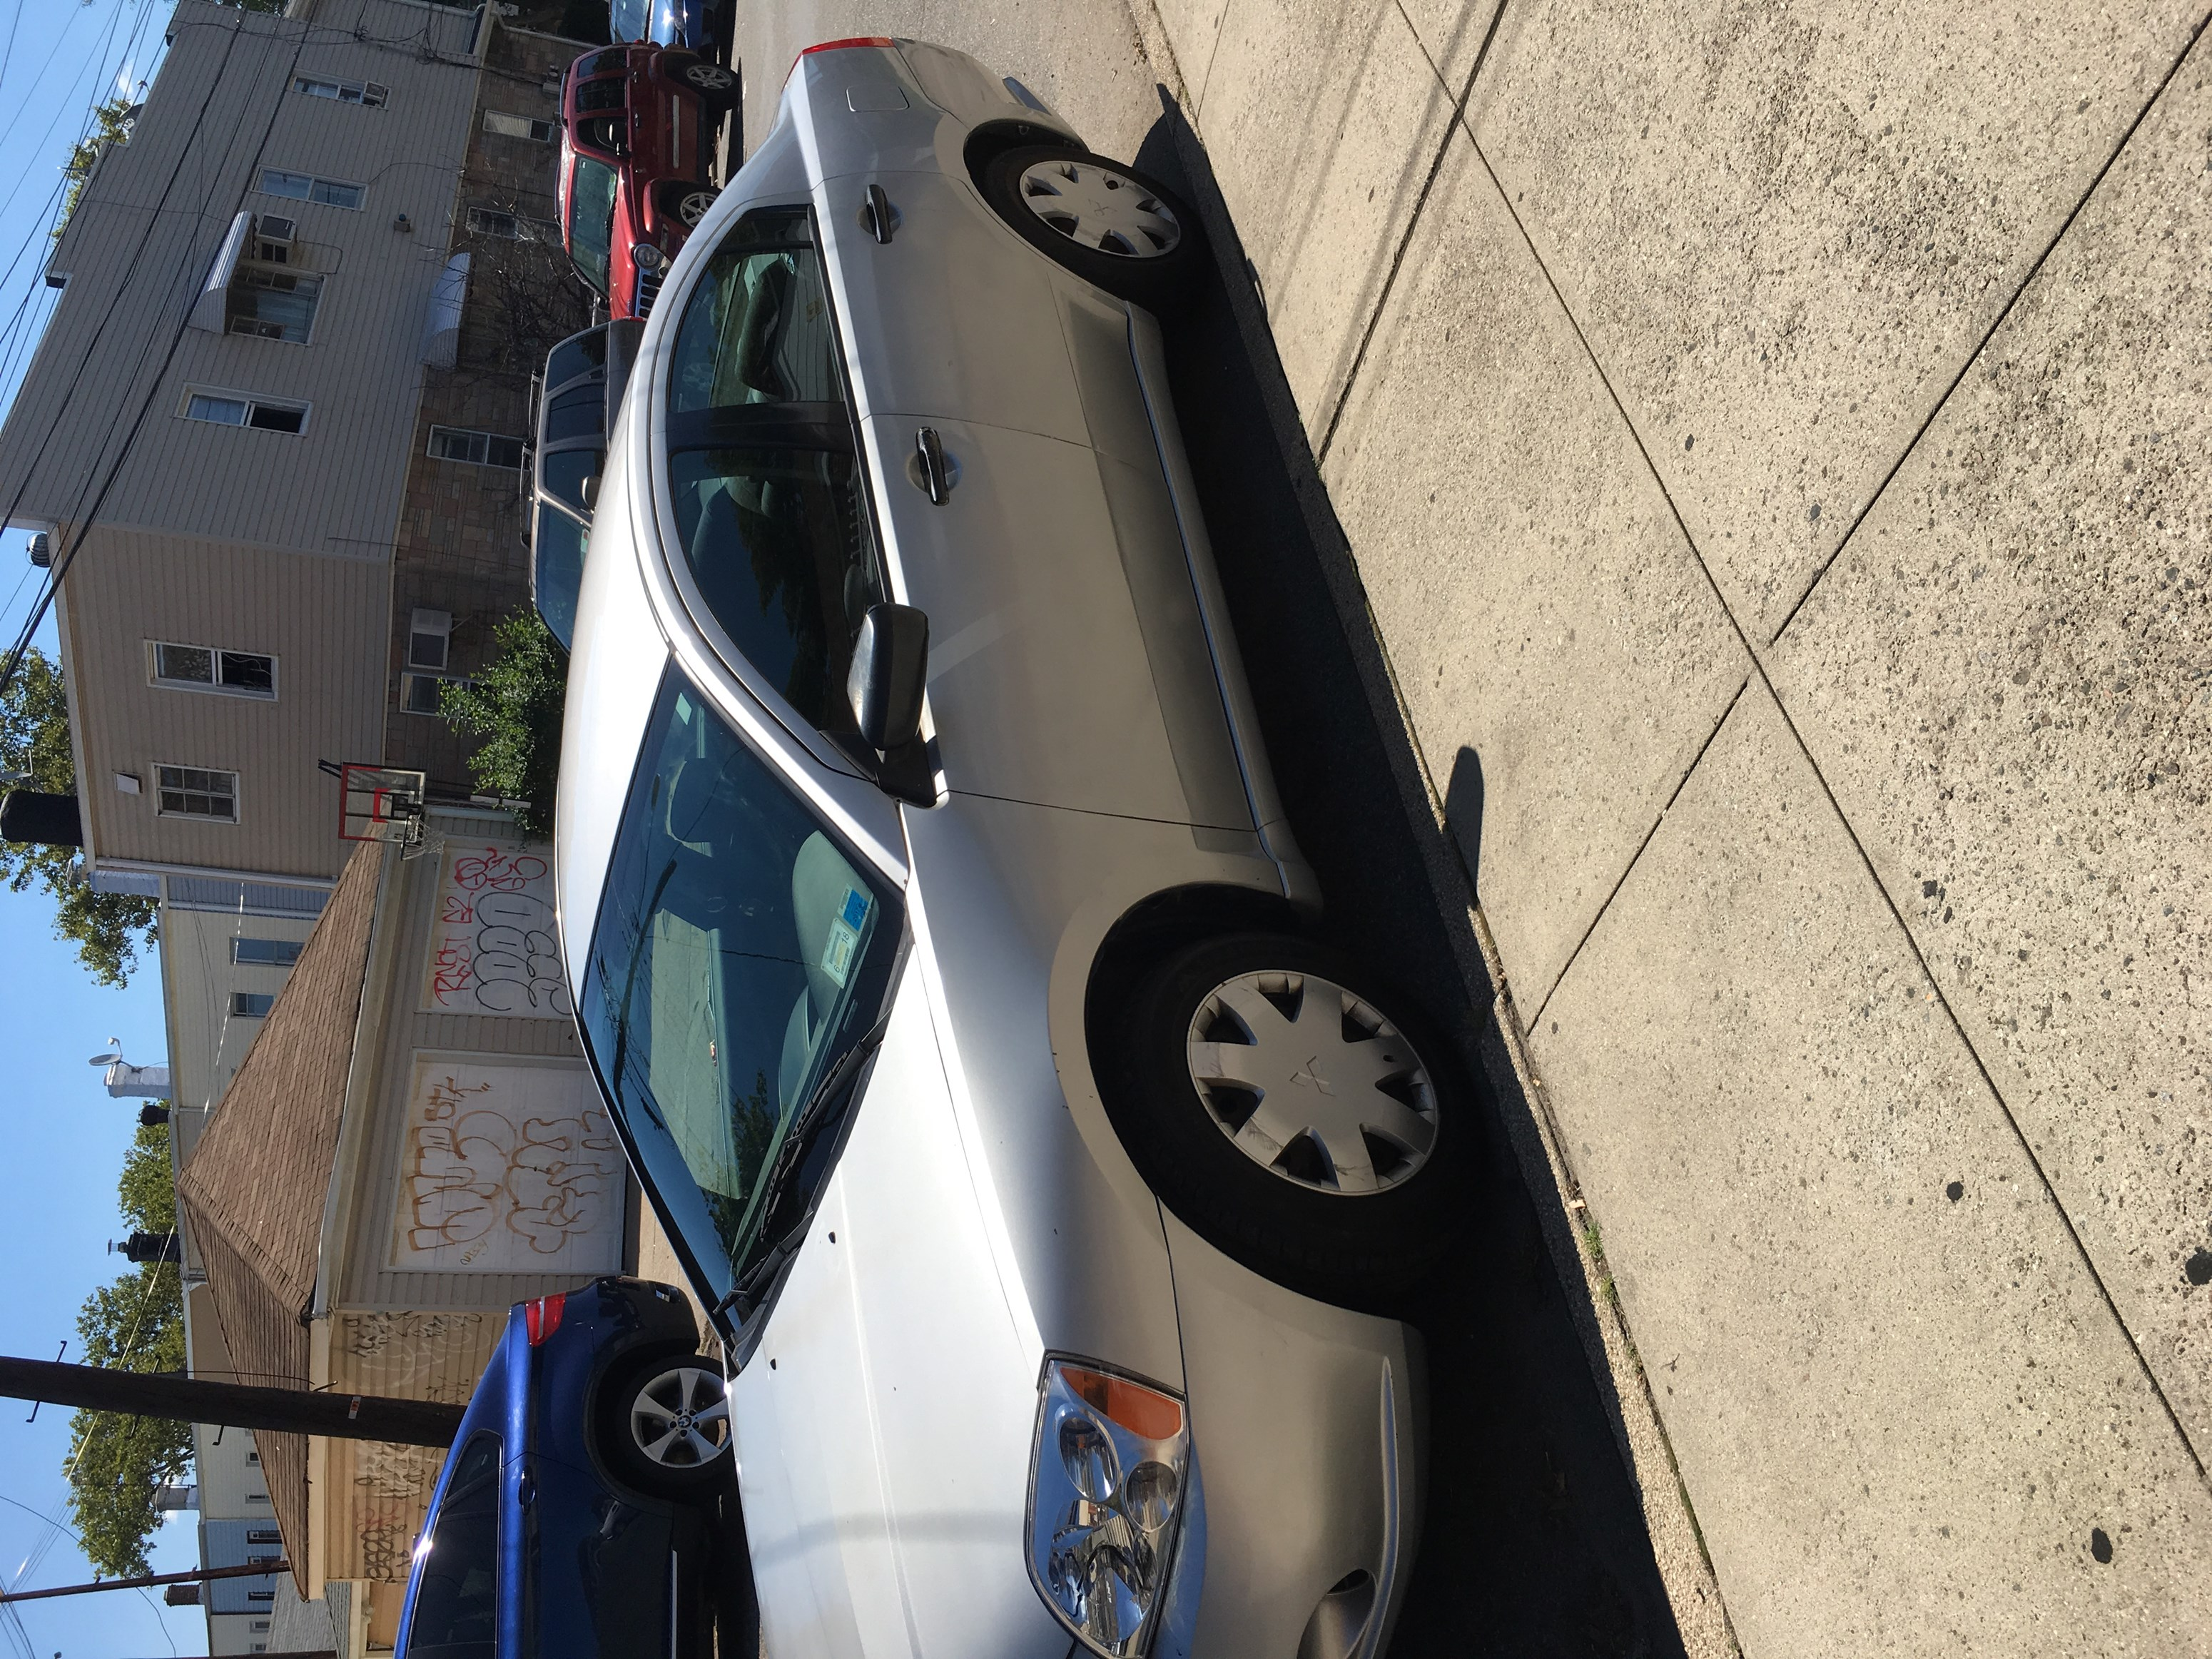 Car For Sale By Owner/ Used Mitsubishi Galant Cars in Ozone Park ...